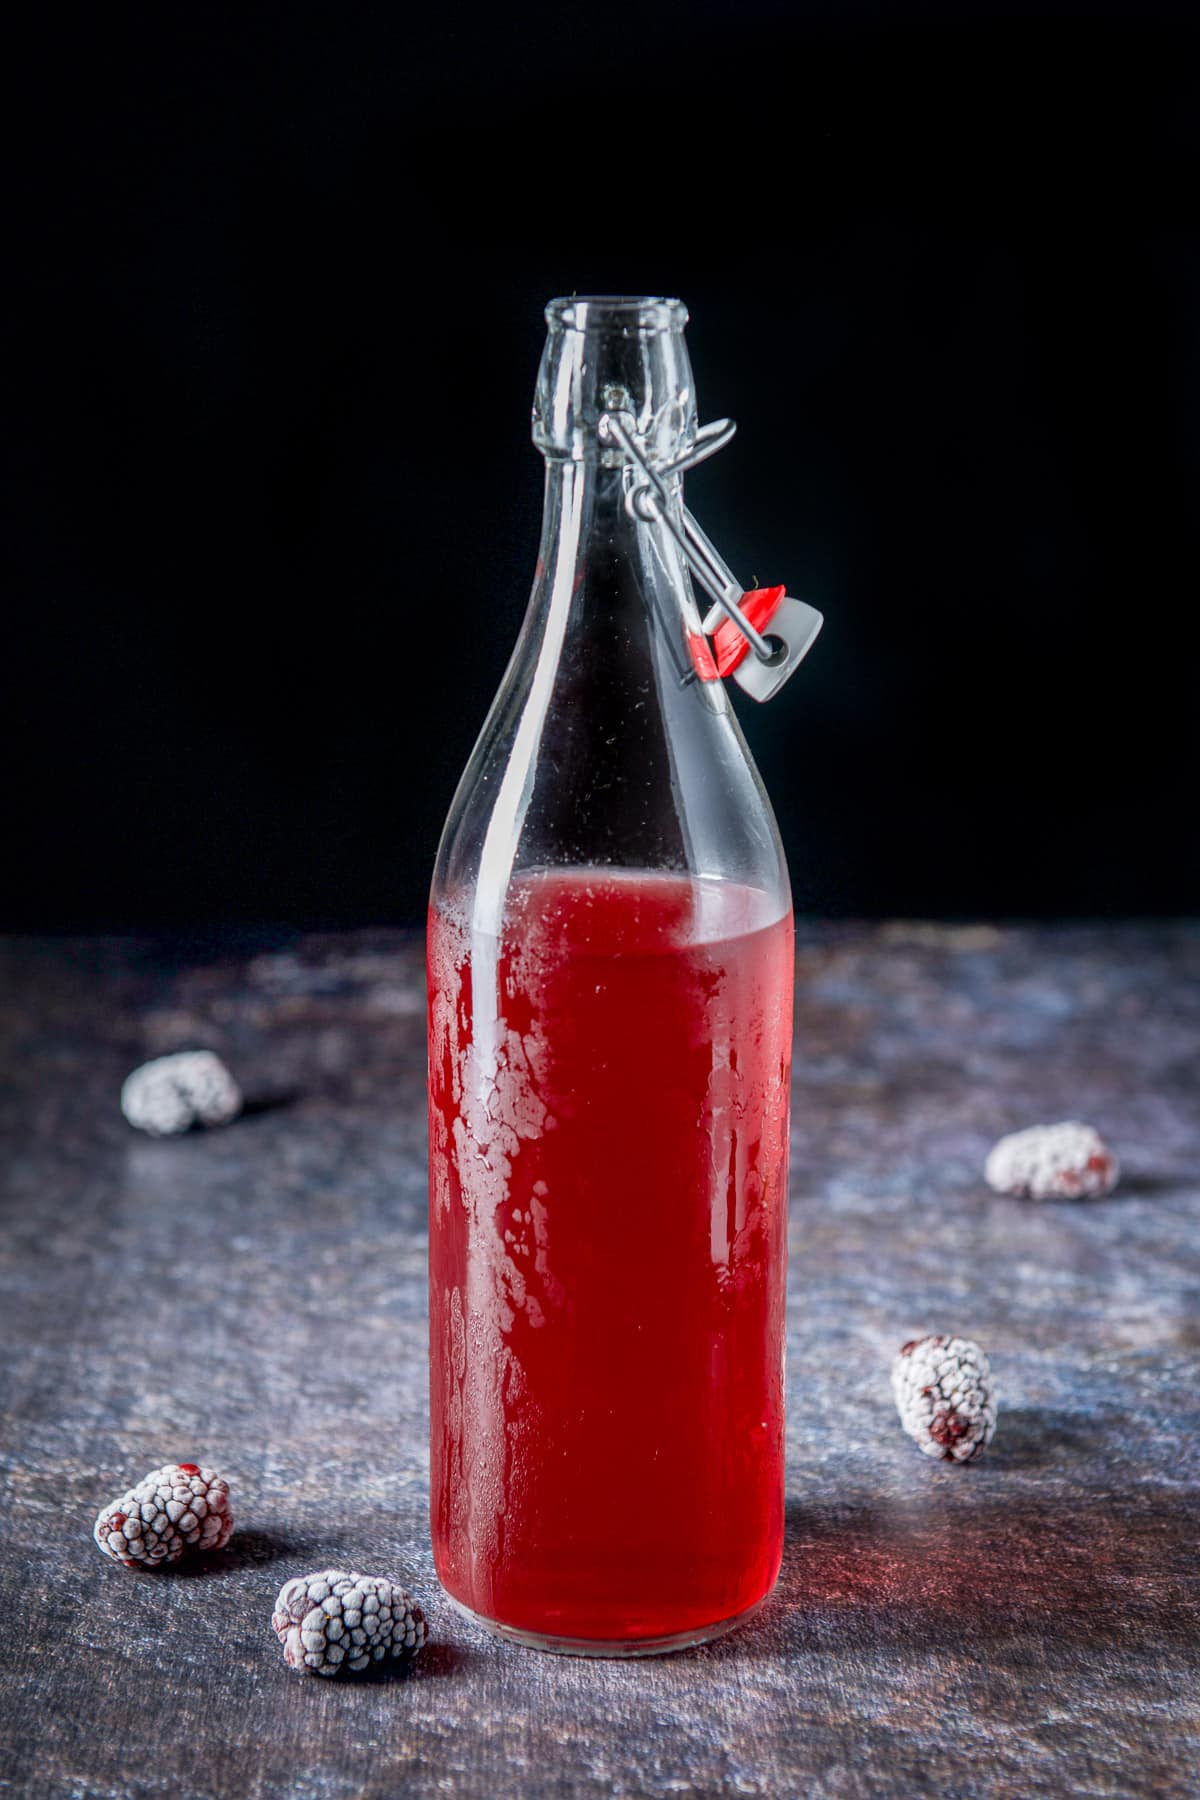 A frosty bottle with red infused vodka with 5 blackberries on a table